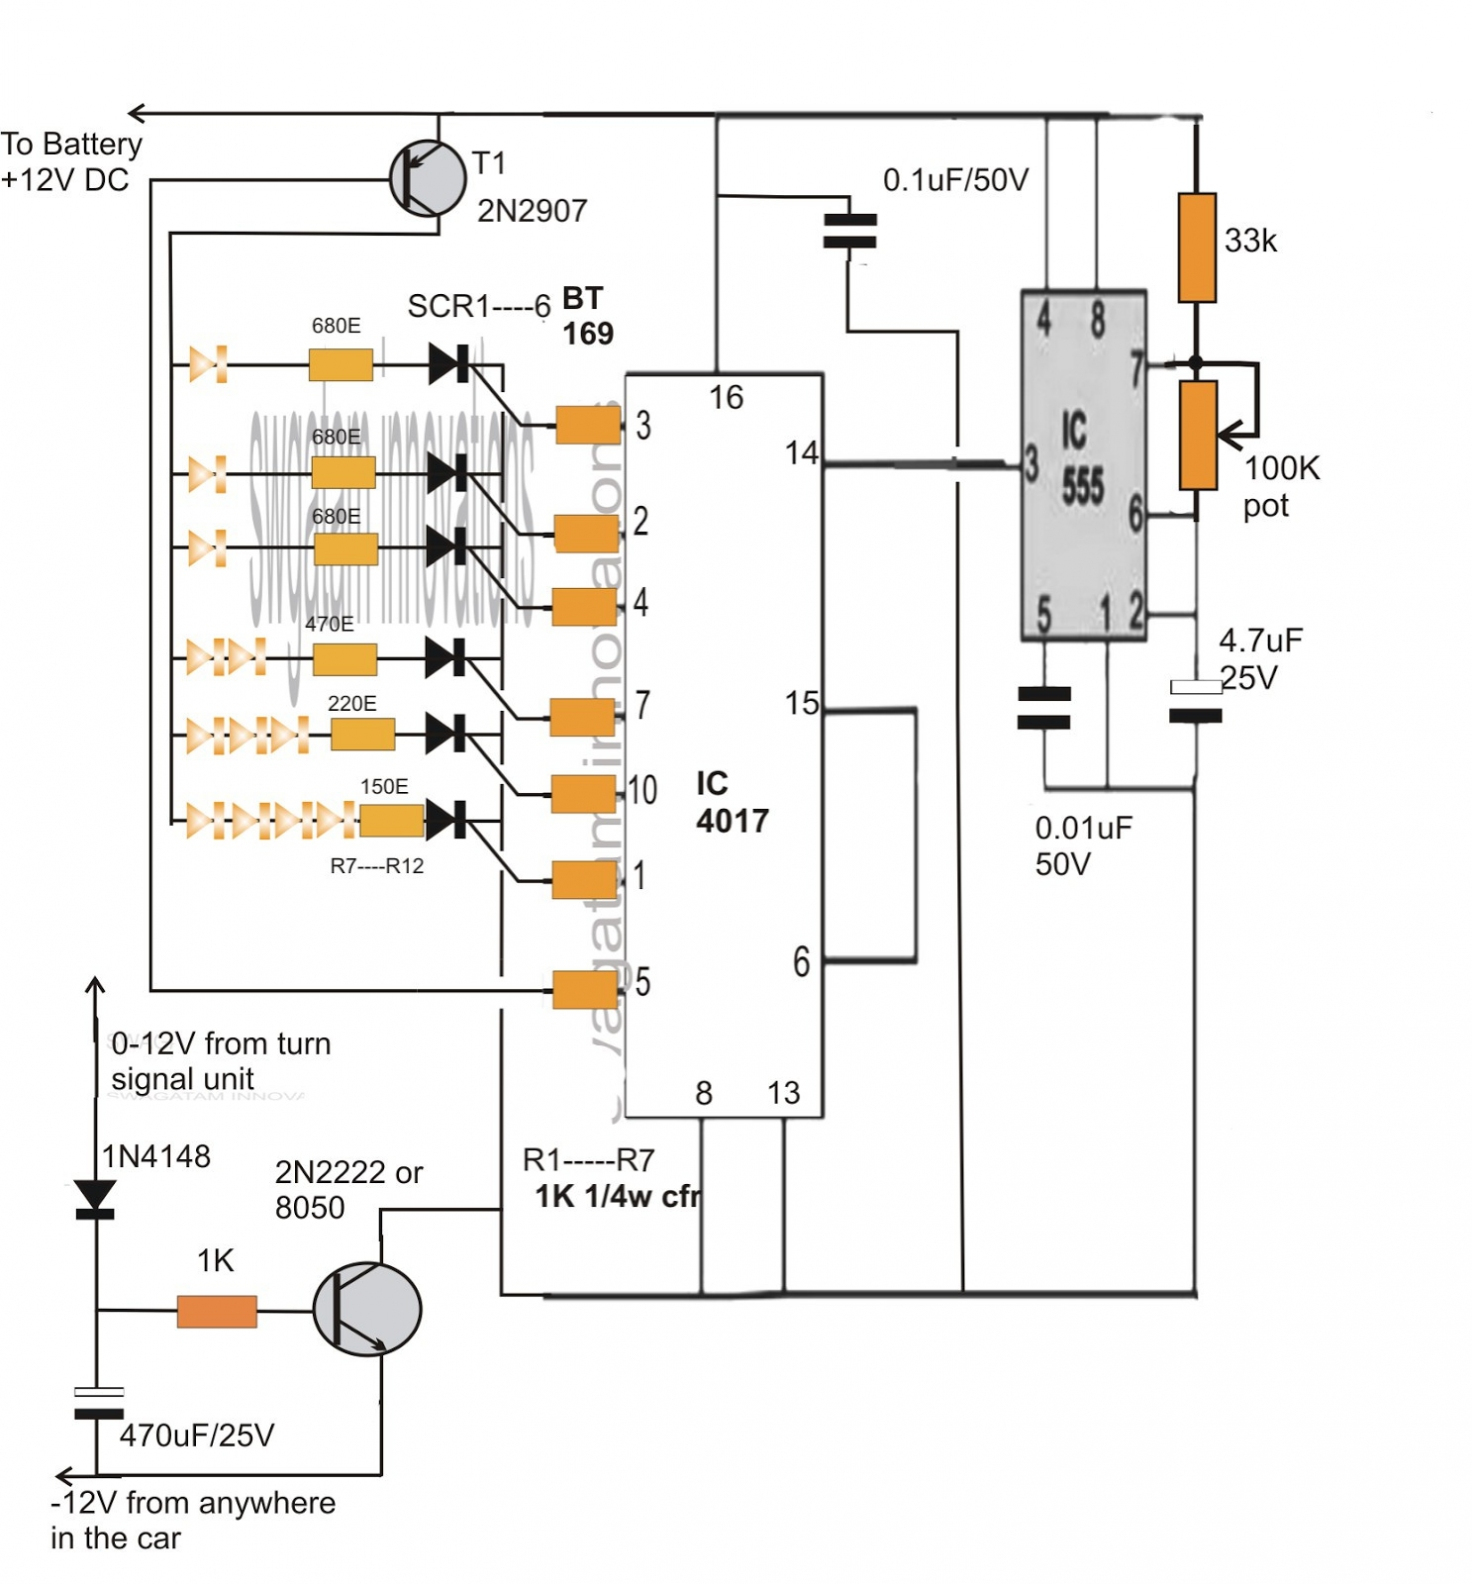 hight resolution of 3 wire led light bar wiring diagram wiring library 3 pin flasher relay wiring